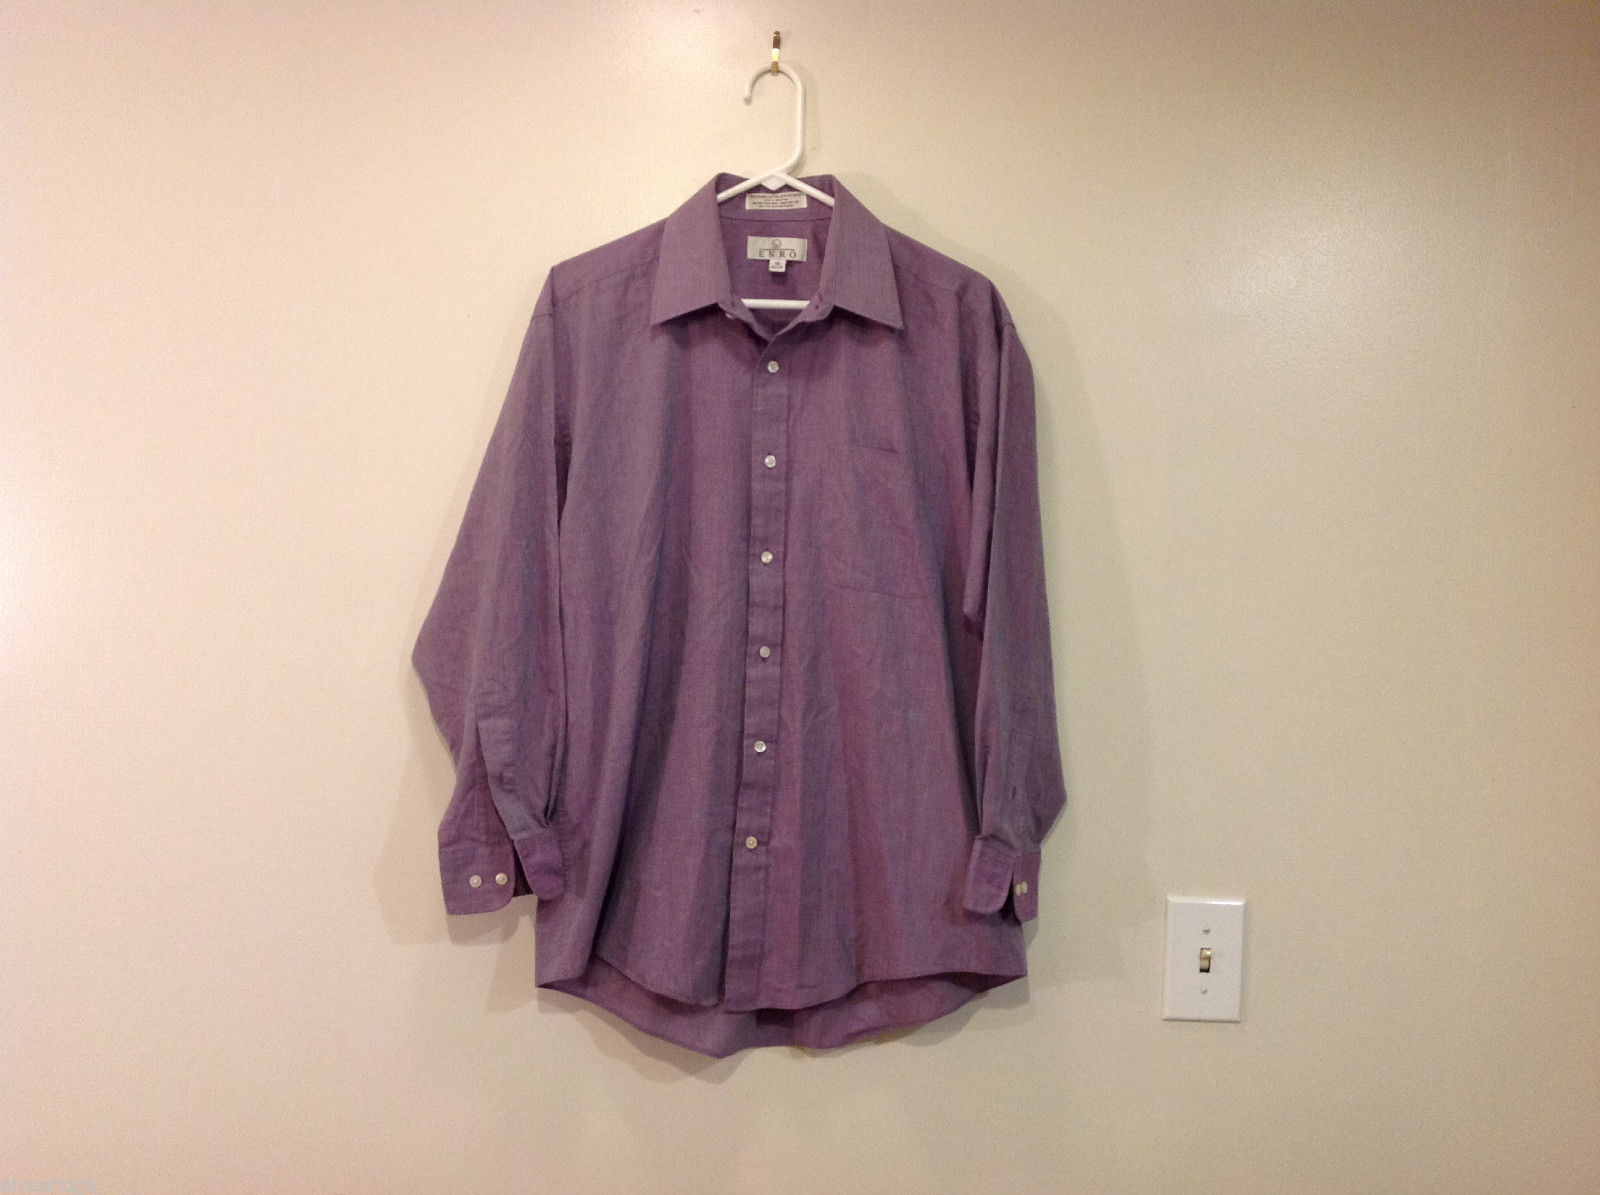 ENRO Light Violet with Gray Hue Shirt, Size 16 (32/33)